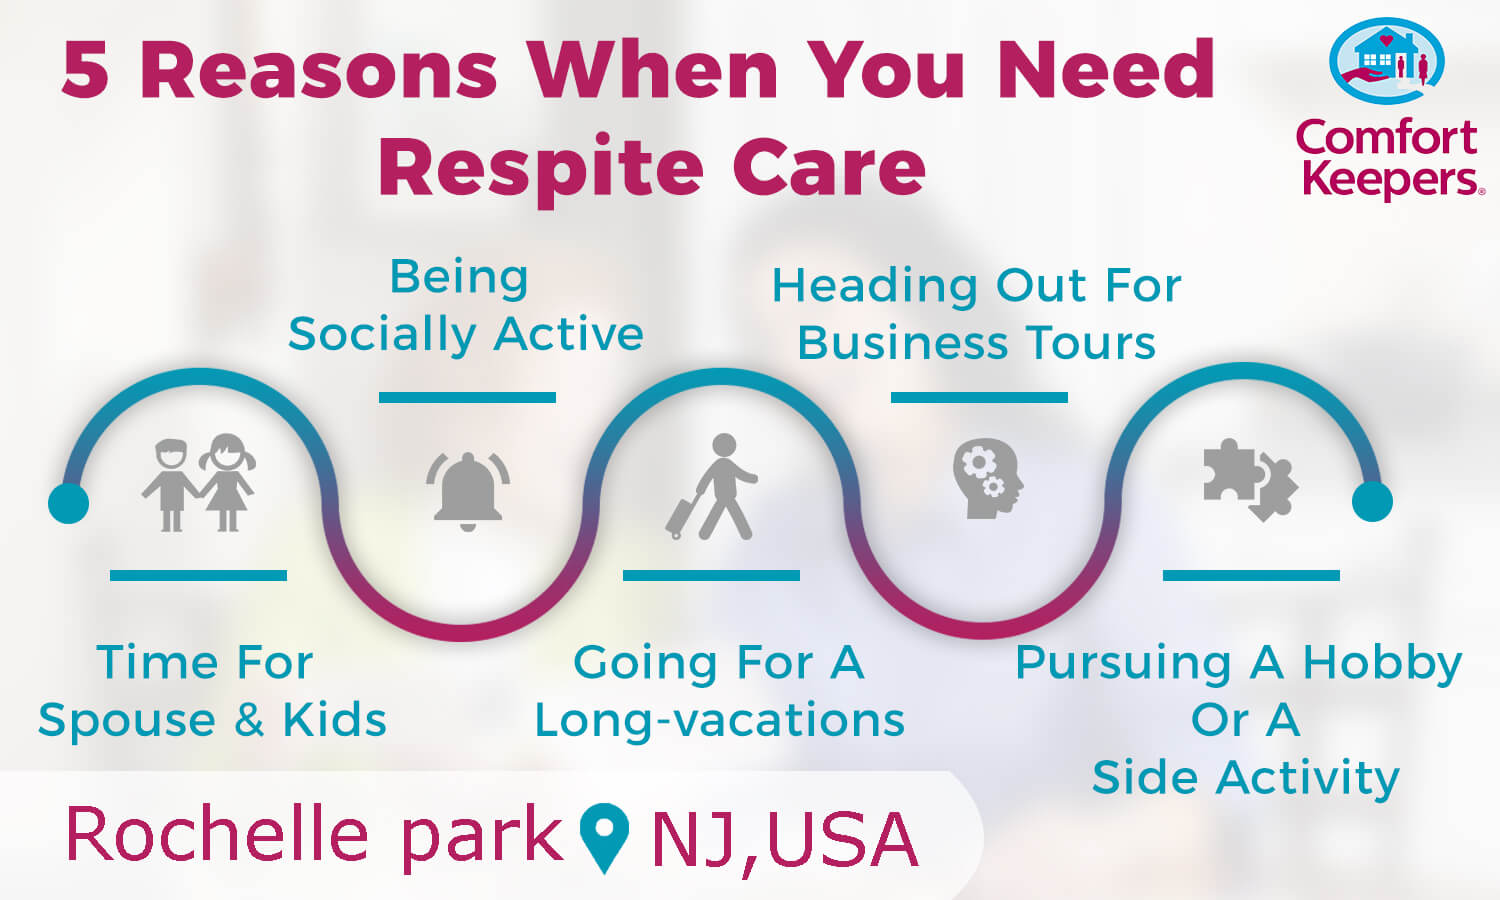 respite-care-for-seniors-in-nj-usa